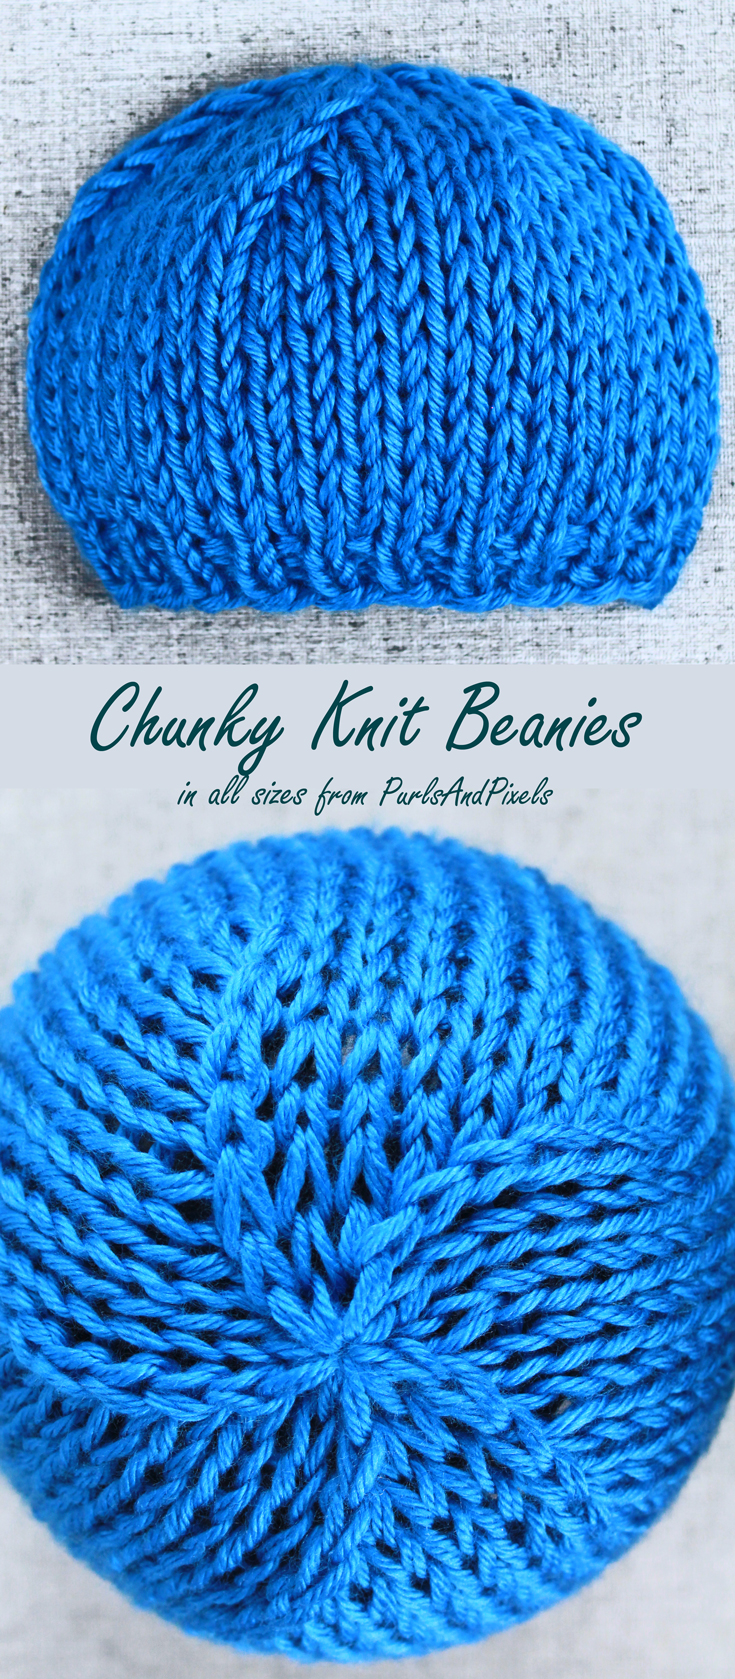 Chunky knit beanies in all sizes, design and knitting pattern from Liz @PurlsAndPixels